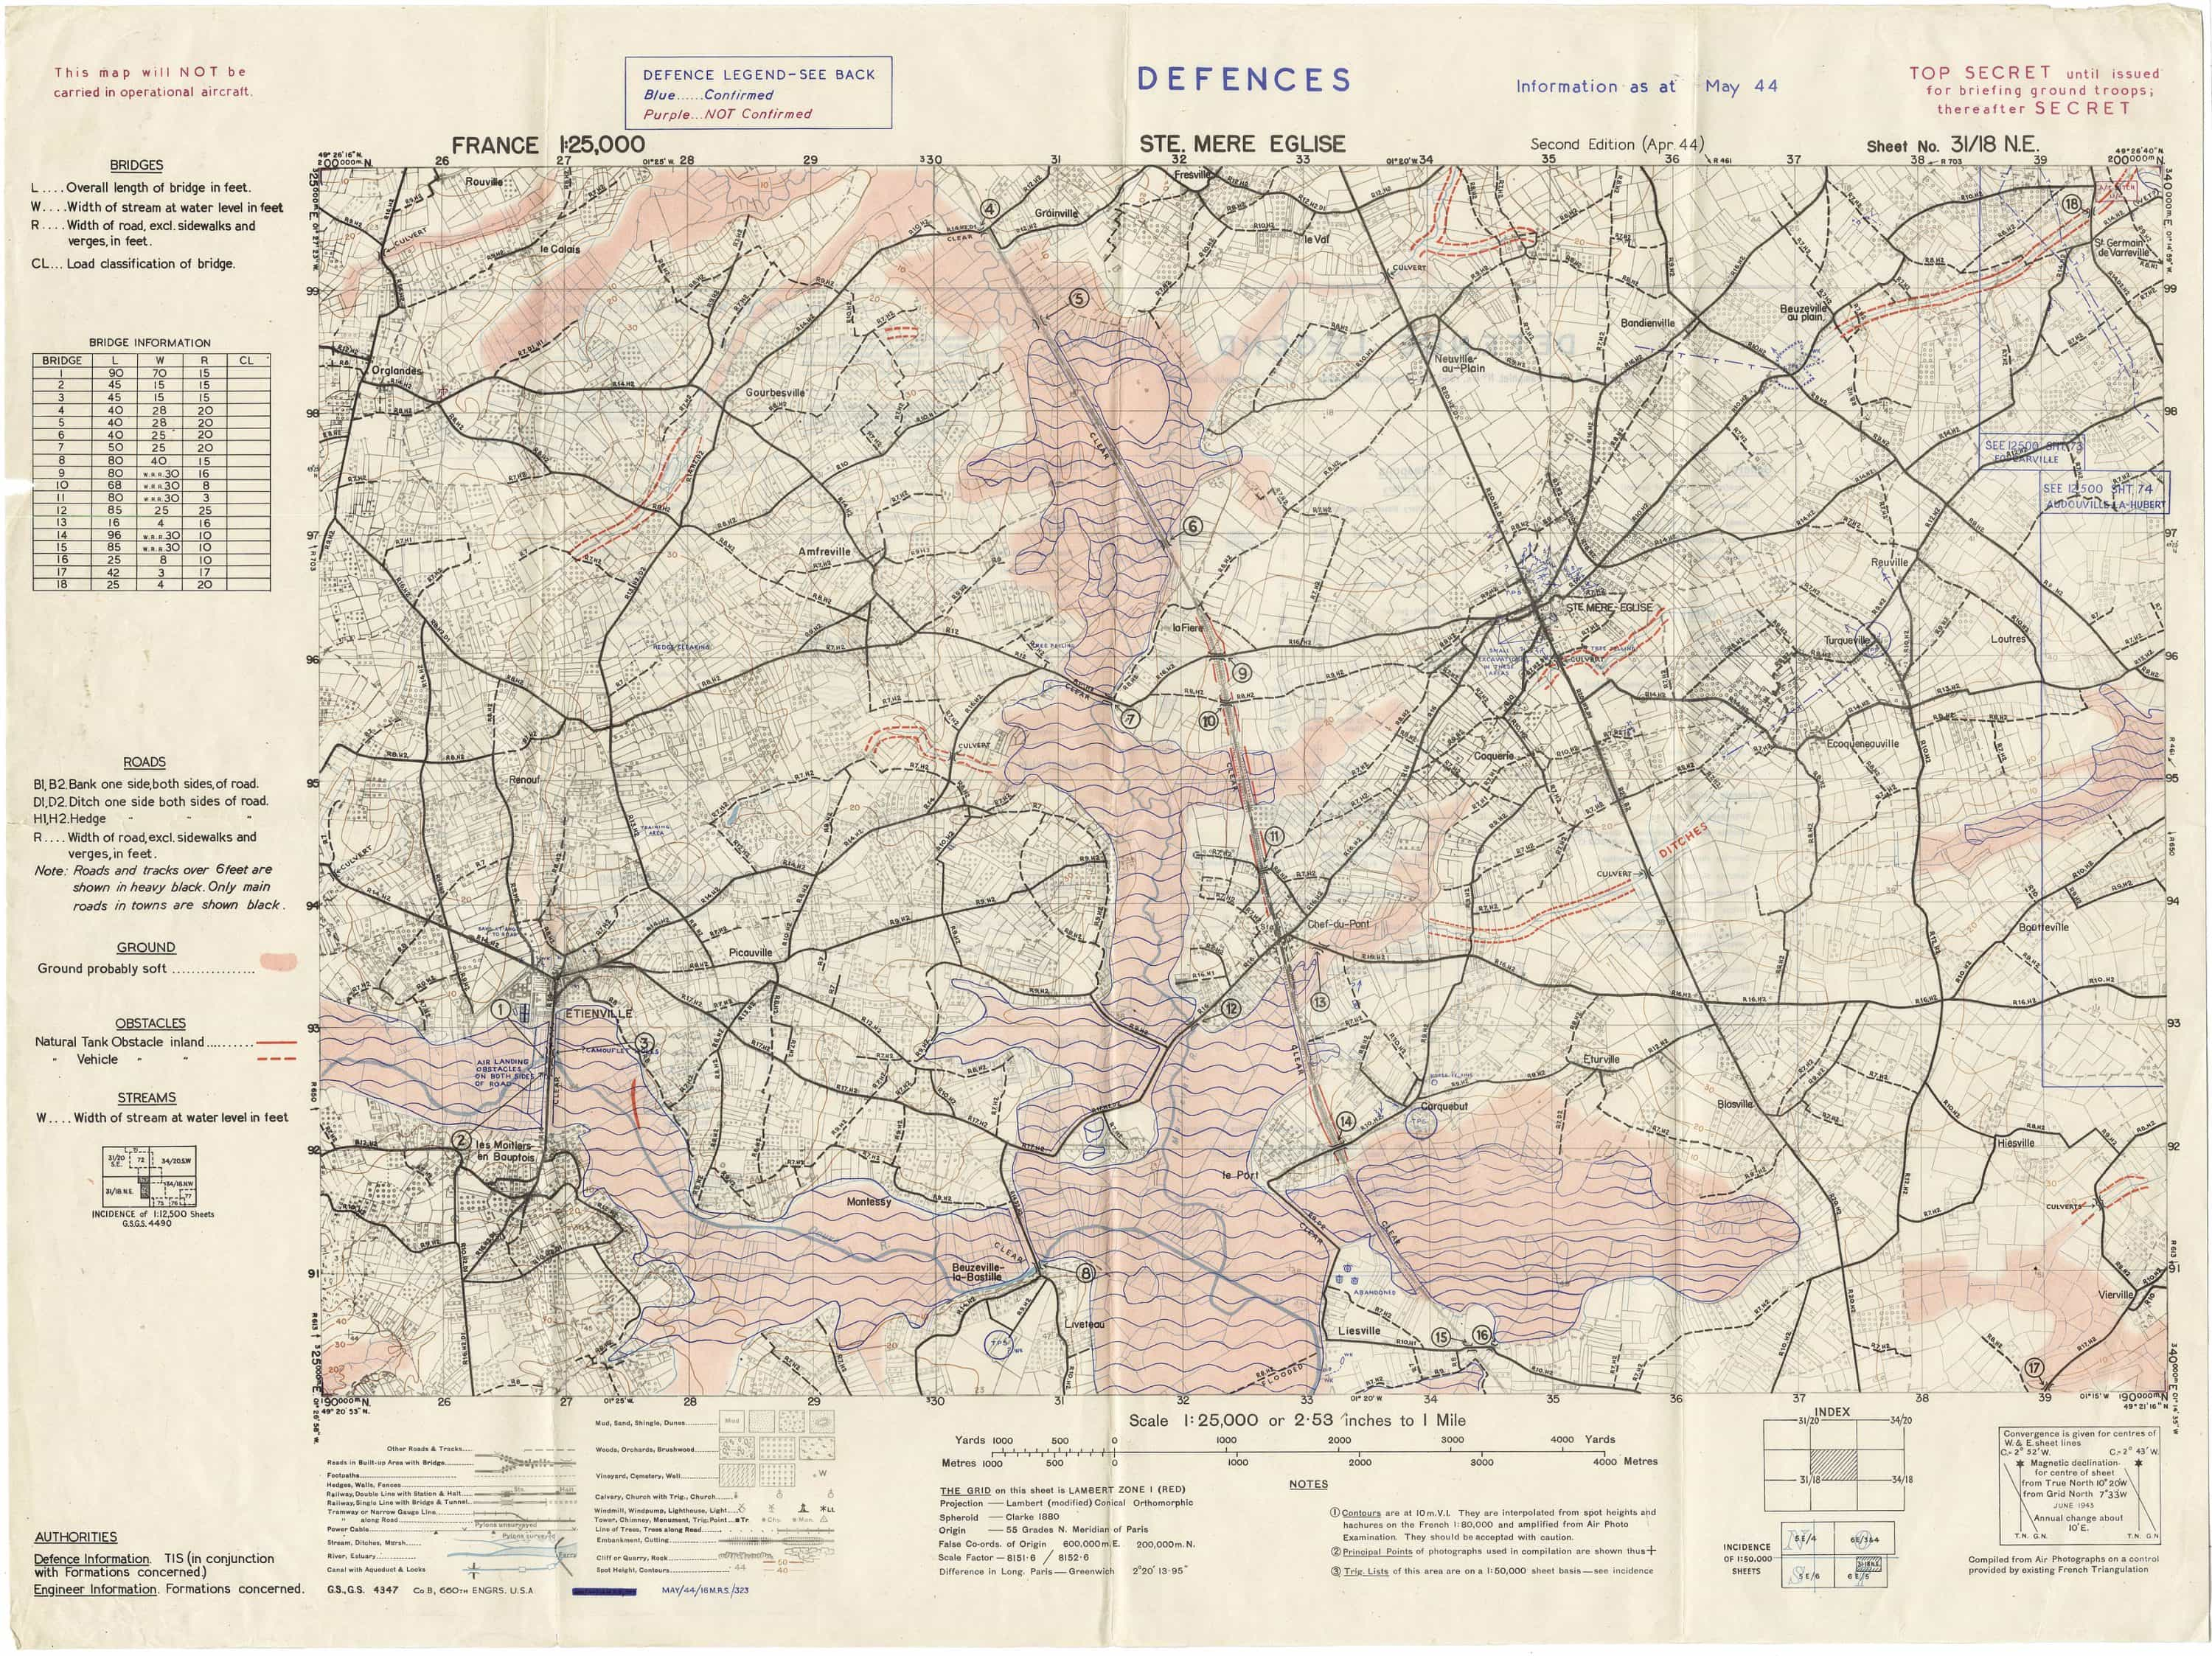 Top-secret Sainte-Mère-Eglise, the first French town ... on democracy map, d-day landings map, nazi map, hitler map, d-day animated map, normandy map, france map, d day weather map, boat map, oklahoma d-day map, action map, dayz map, eisenhower map, d-day europe map, juno beach map, falaise gap map, d-day interactive map, d-day beach map, minecraft d-day map,